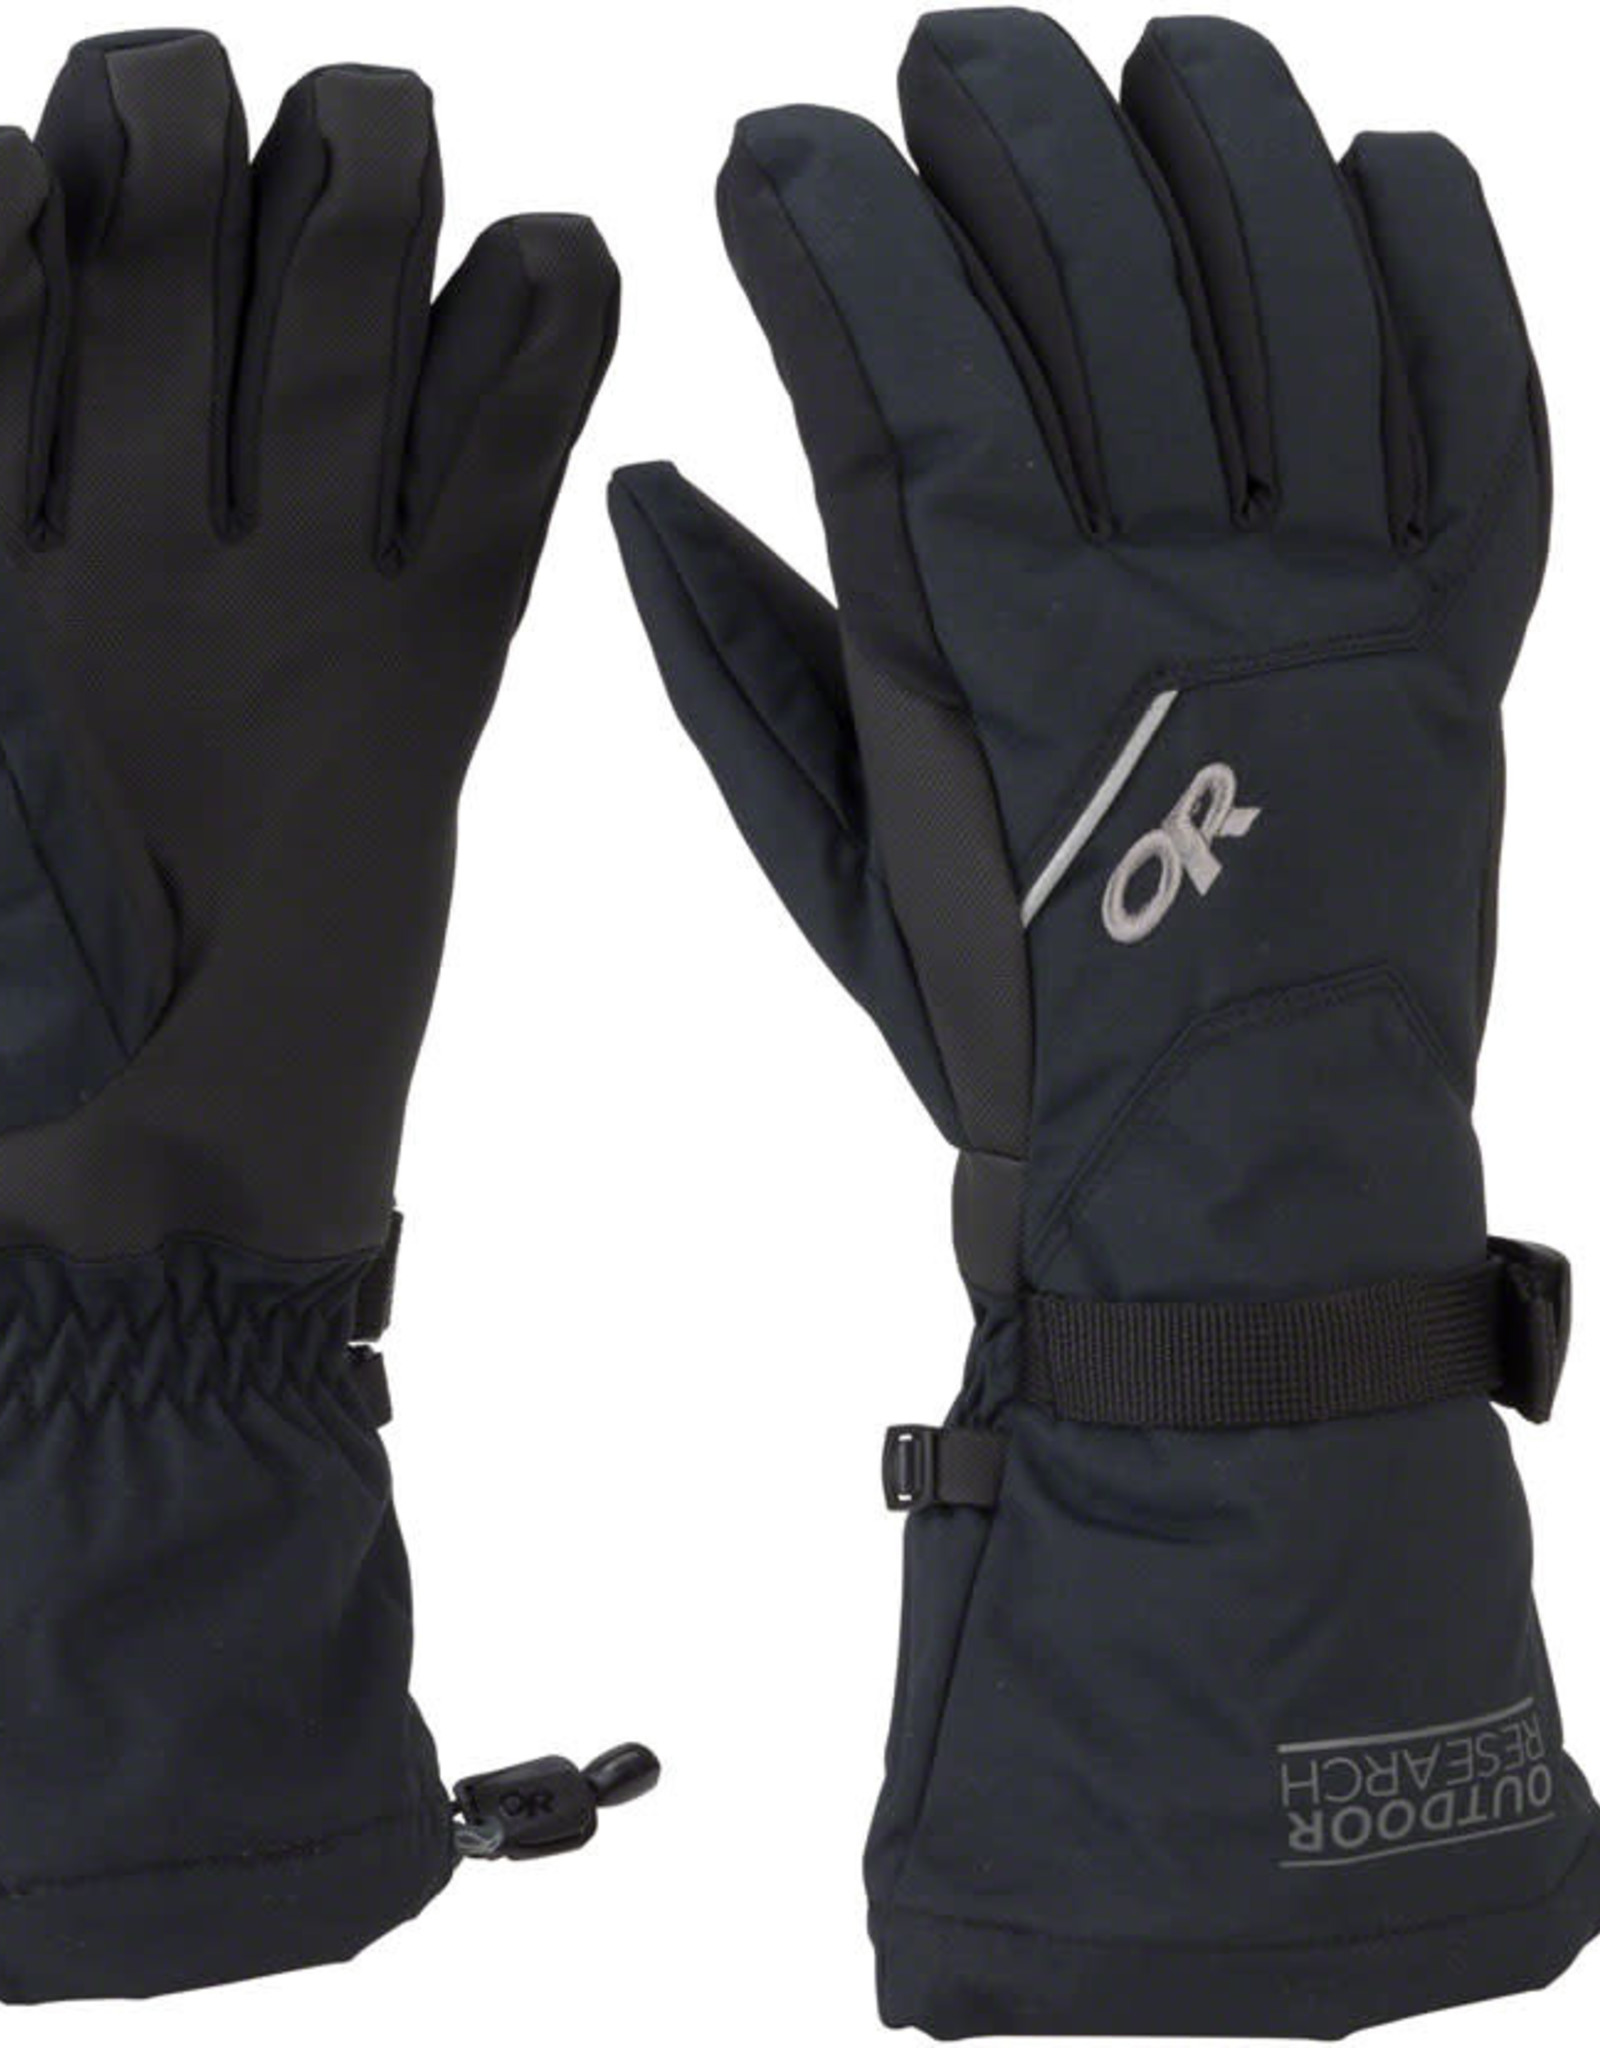 Outdoor Research Outdoor Research Adrenaline Gloves - Small